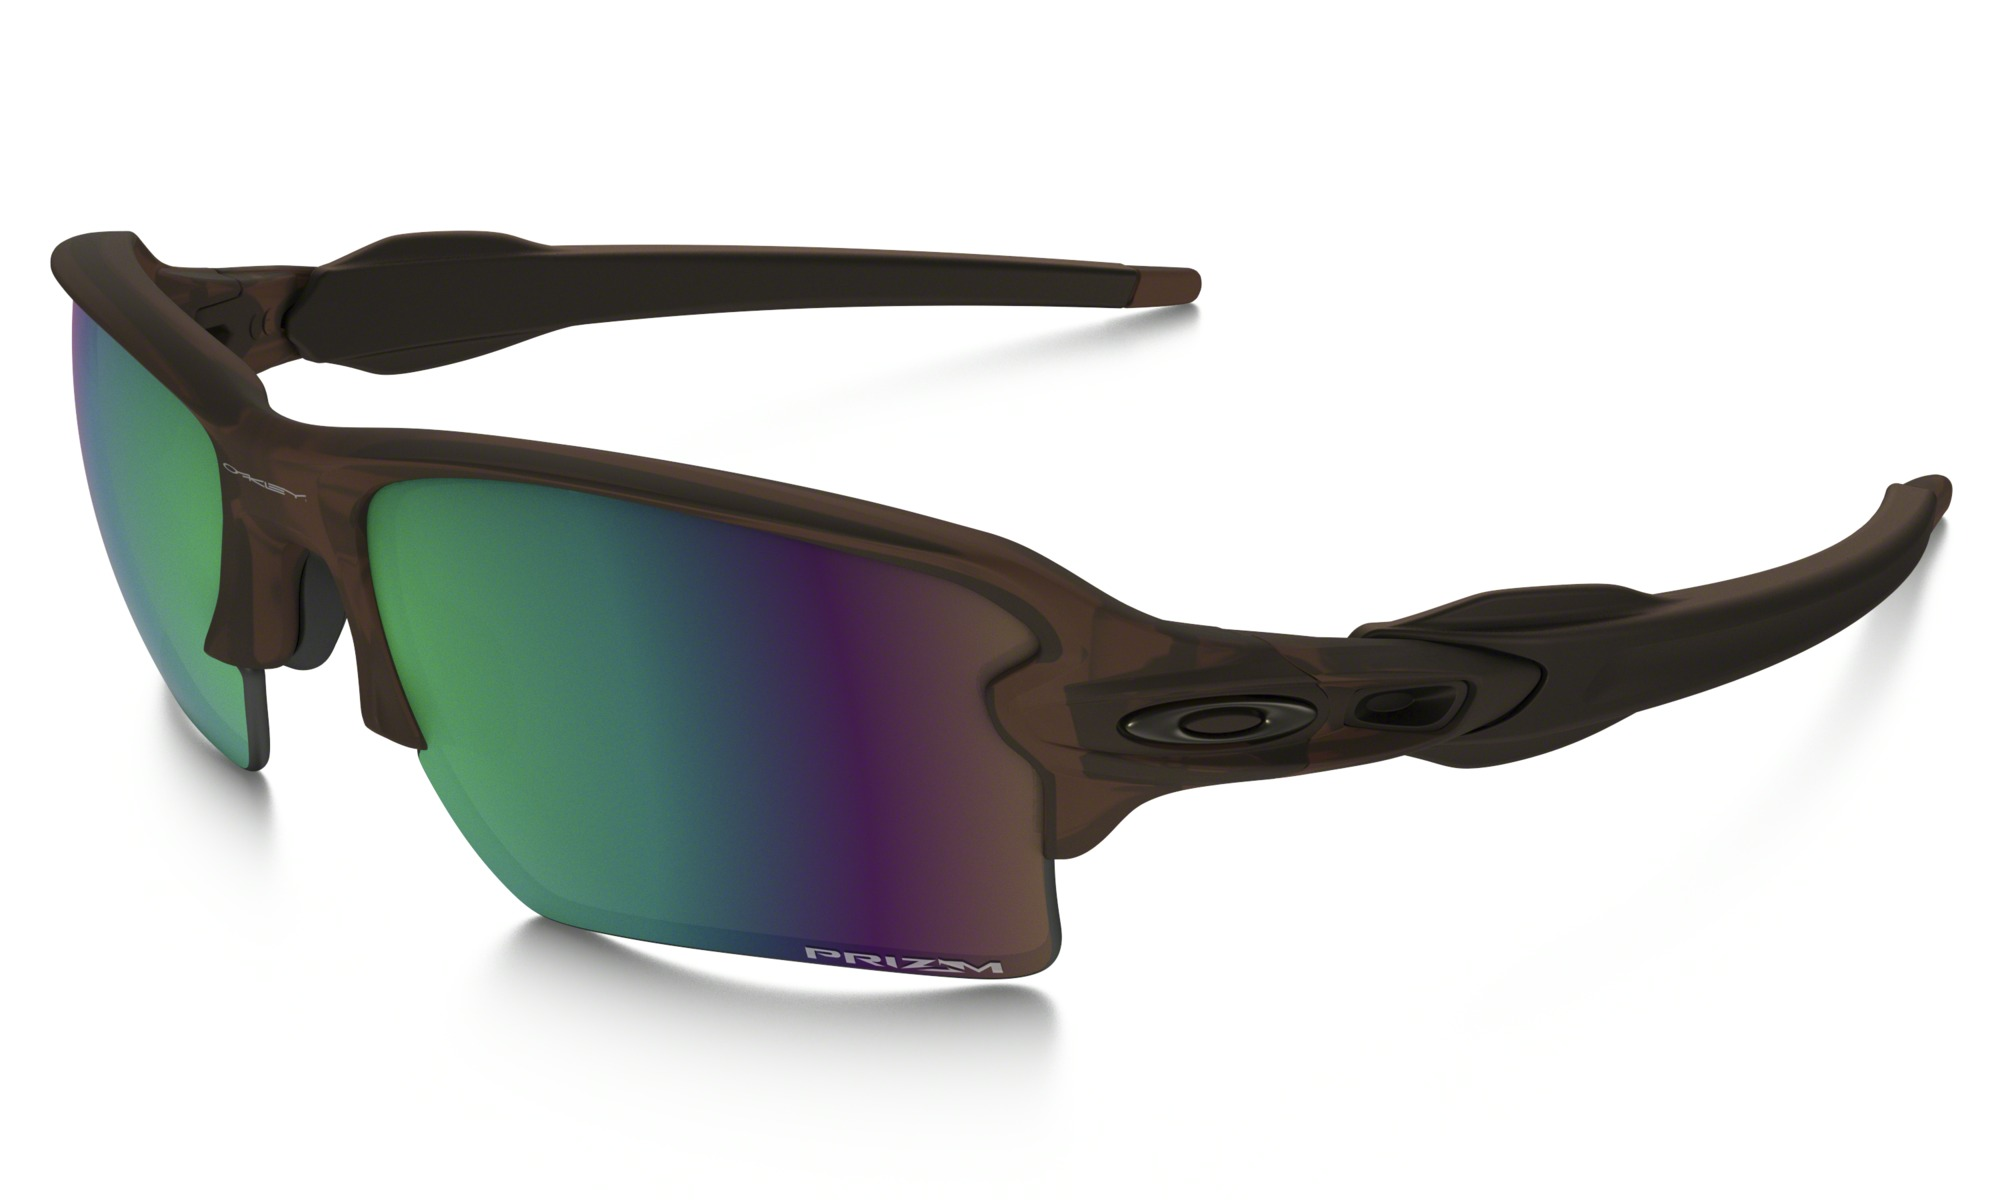 cb72748900d15 Product Inquiry. Name  . Email  . Phone  . Subject FLAK 2.0 XL ROOT BEER   PRIZM  SHALLOW WATER POLARIZED